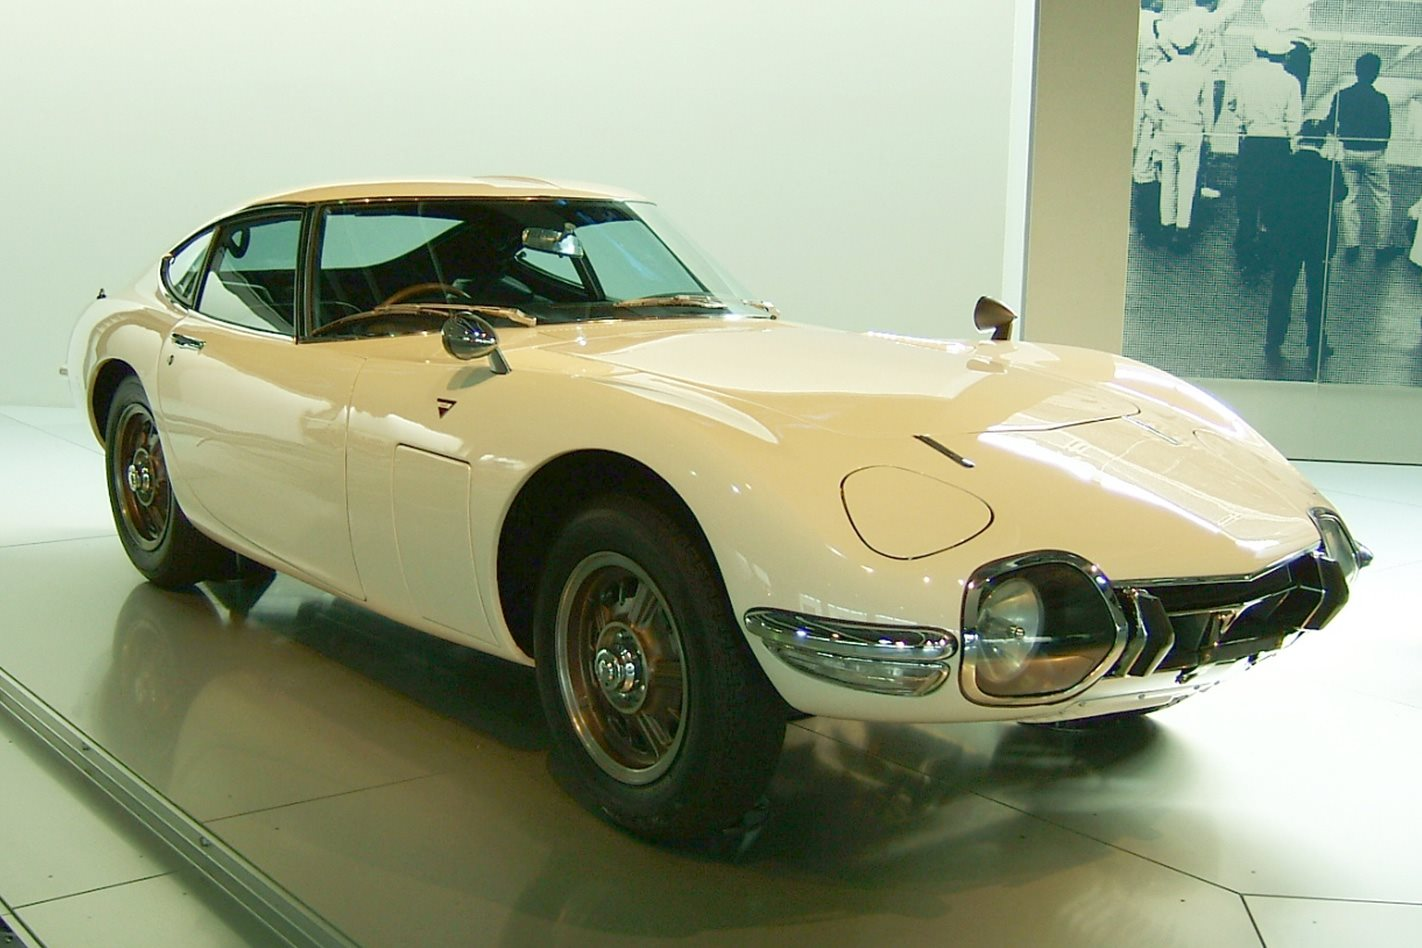 Toyota 2000GT - You Only Live Twice (1967)